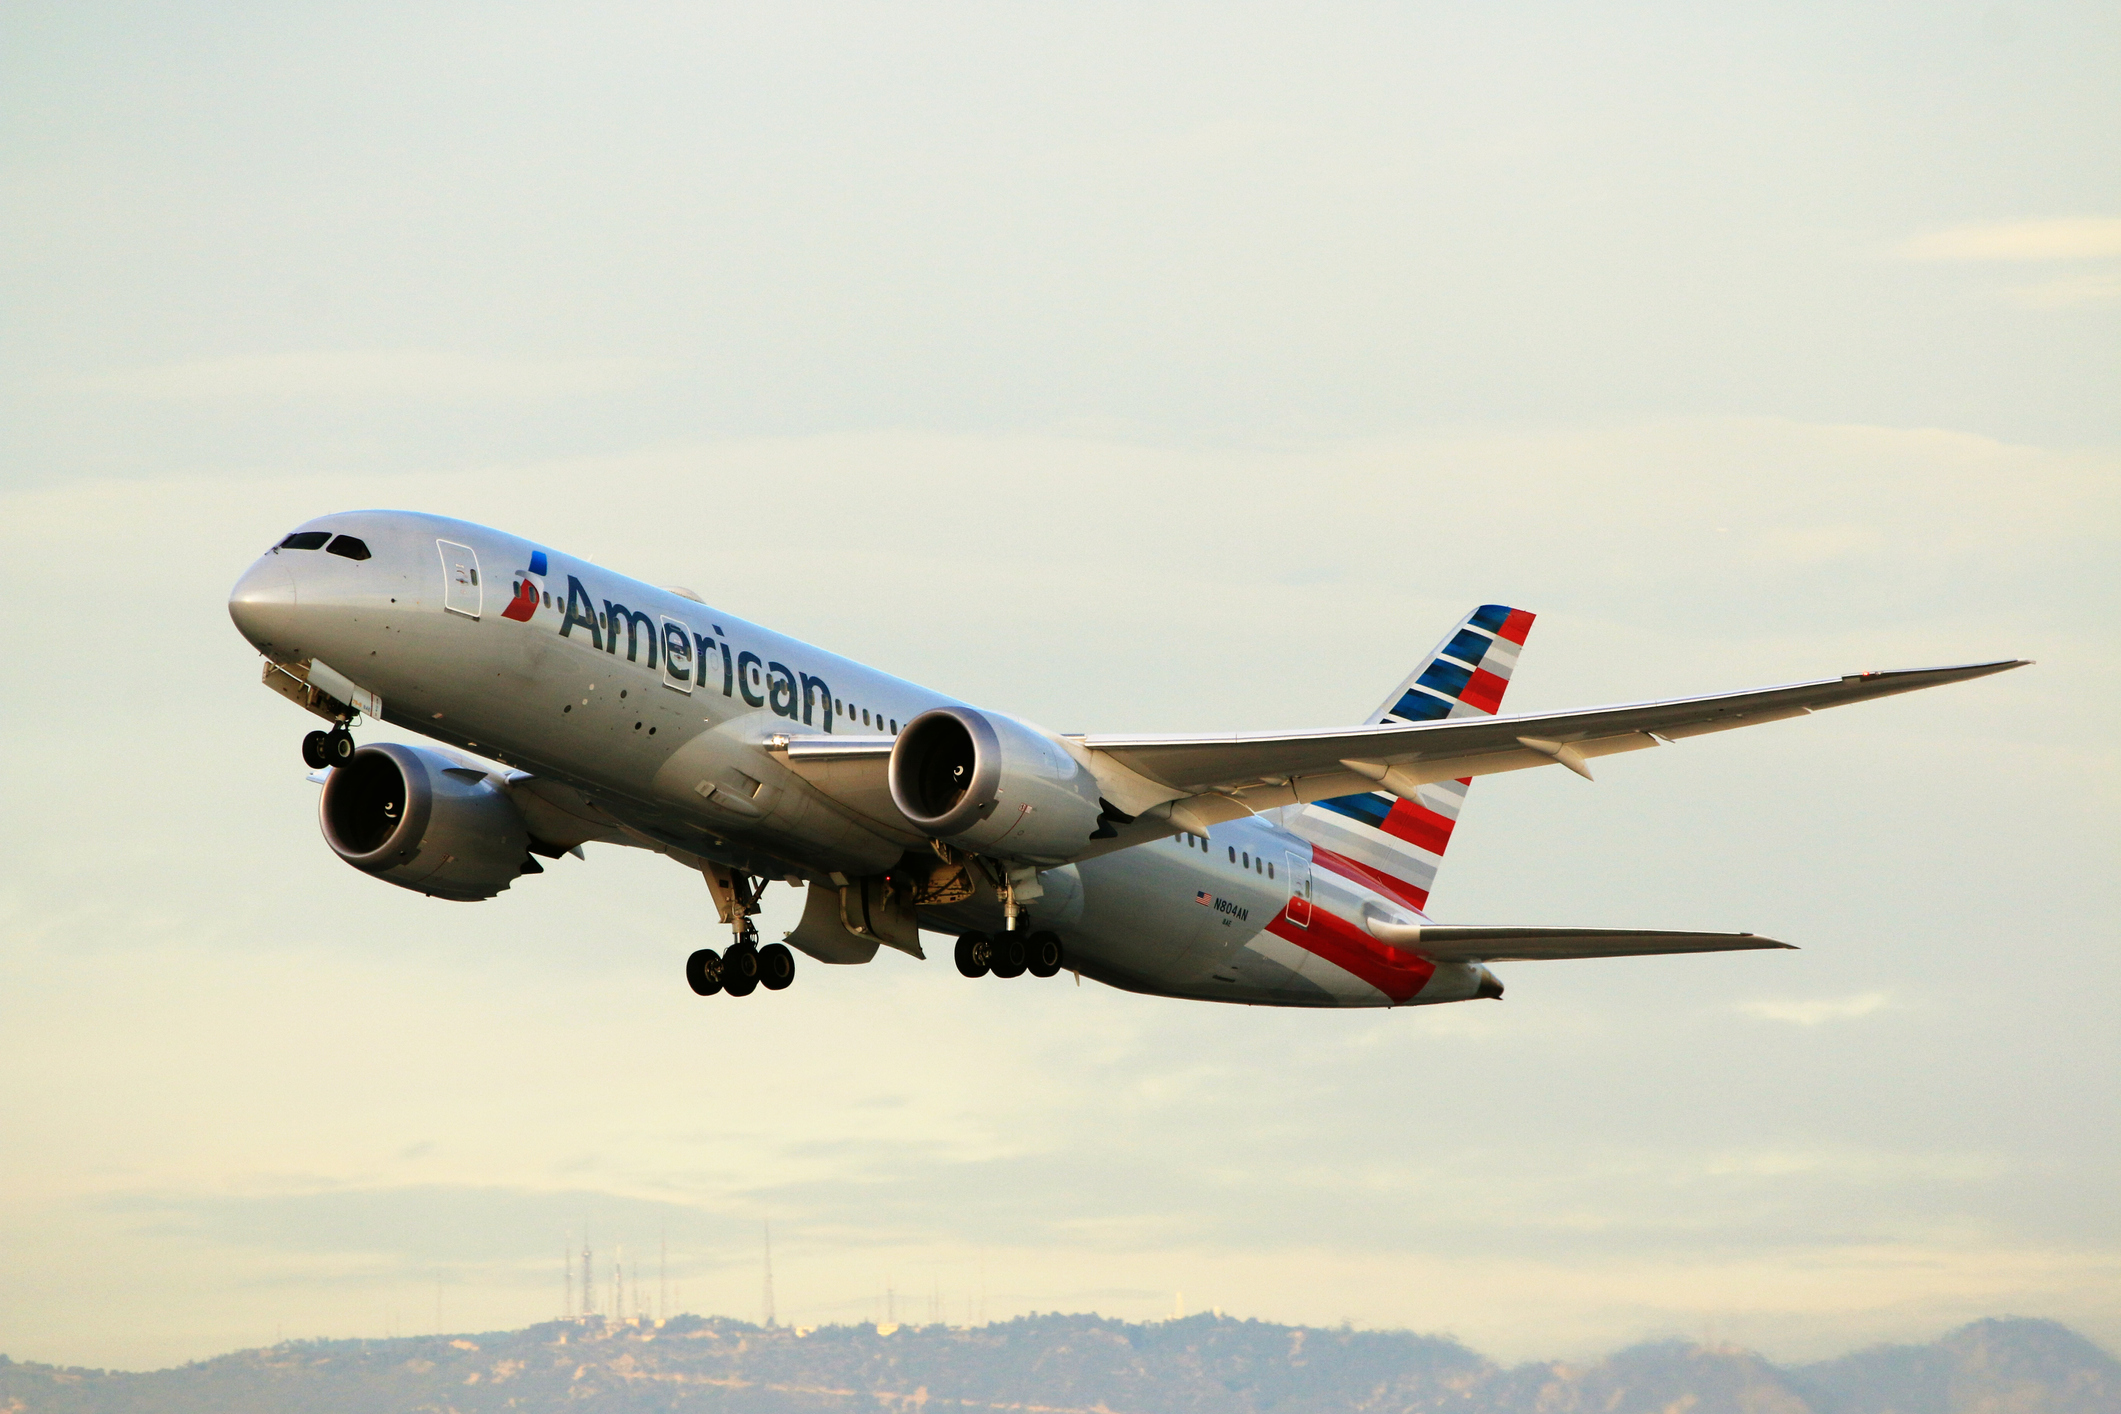 Five American Airlines staffers hospitalized after noticing 'odor' on plane